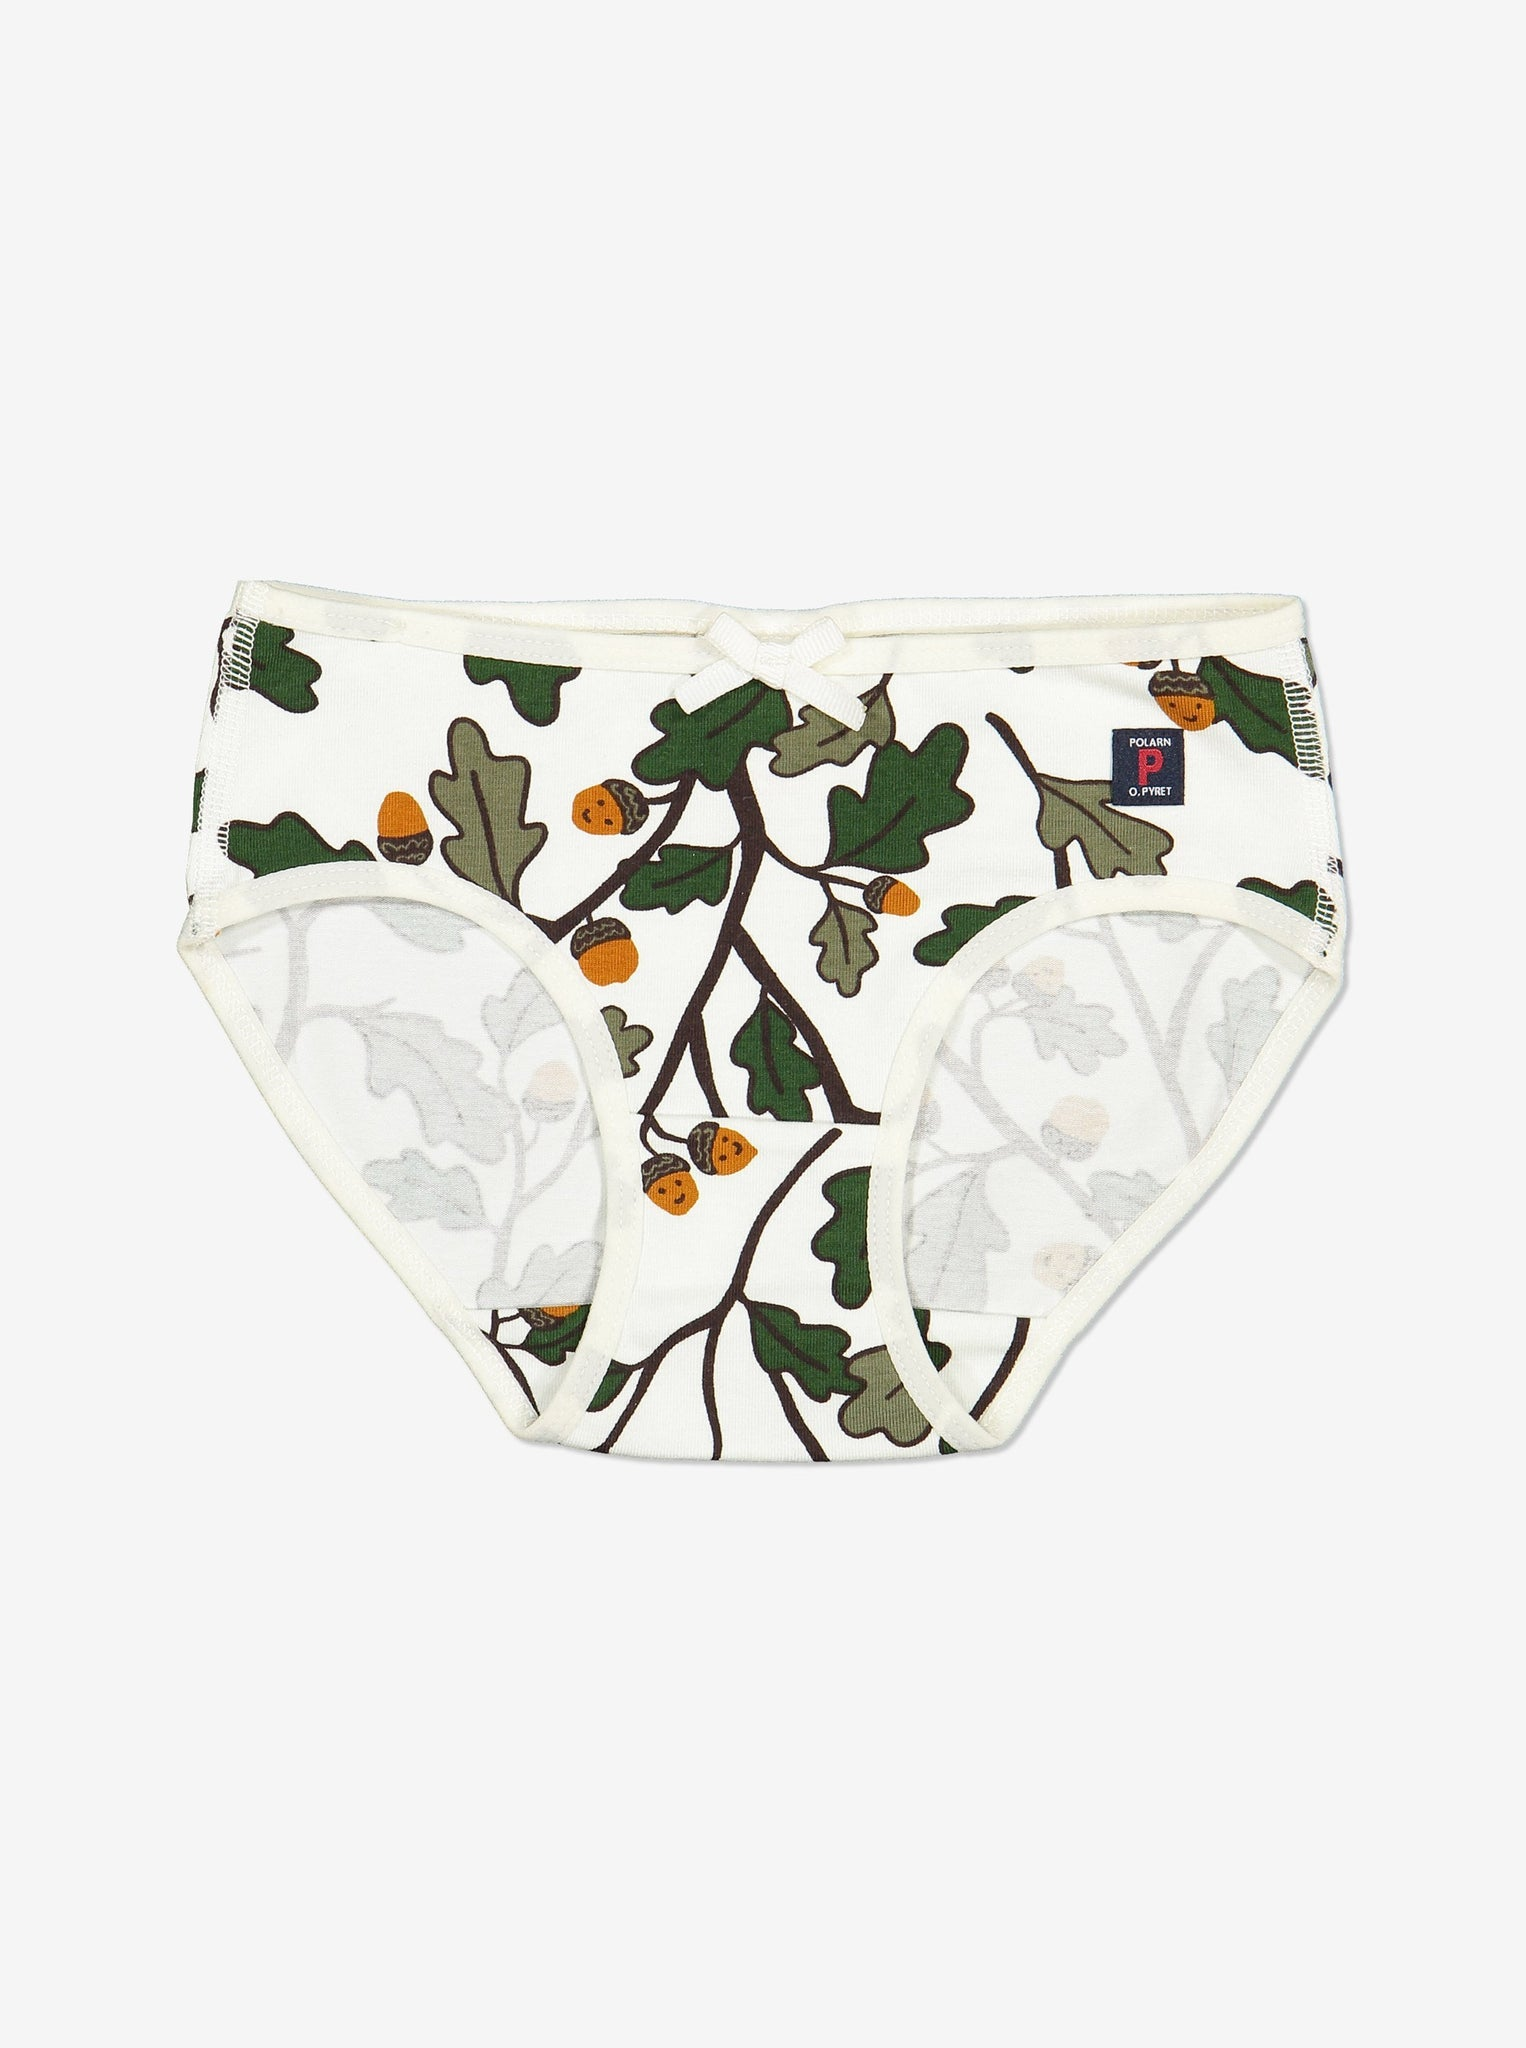 Acorn Print Girls Briefs-Girl-1-12y-Natural